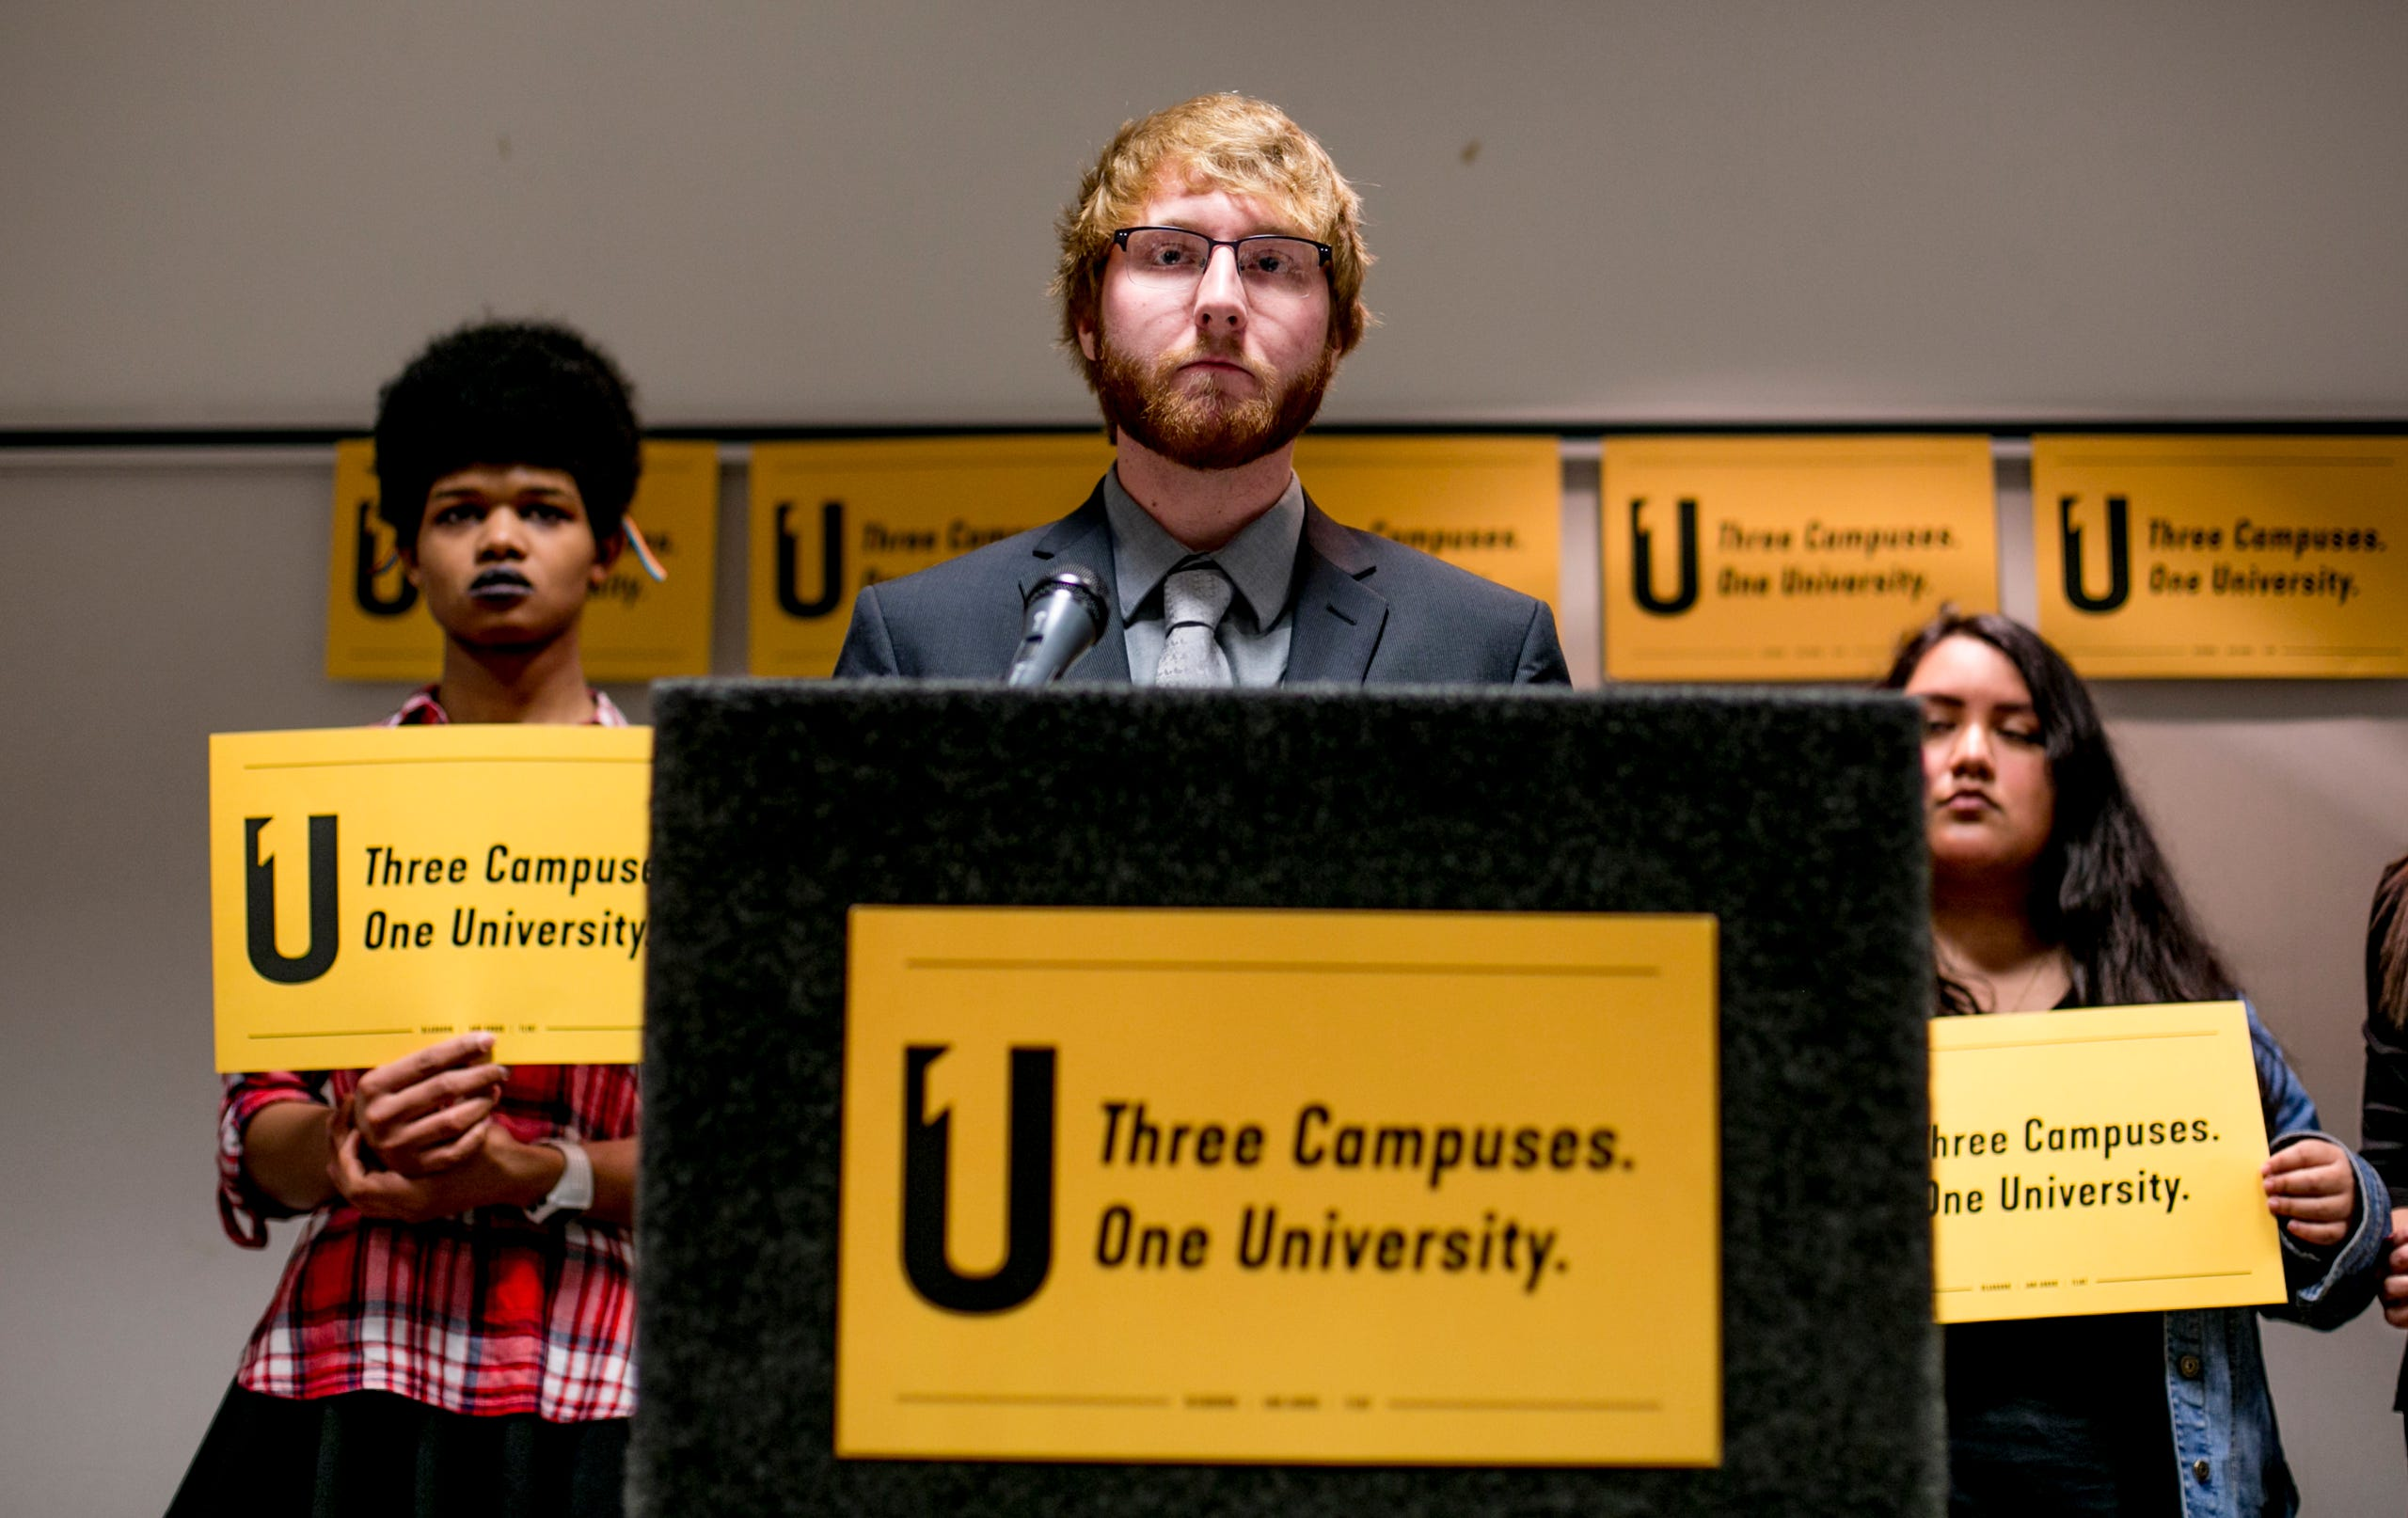 University of Michigan-Flint undergrad Austin Ogle said medical and legal services that are available to UM-Ann arbor students are lacking at UM-Flint and UM-Dearborn.